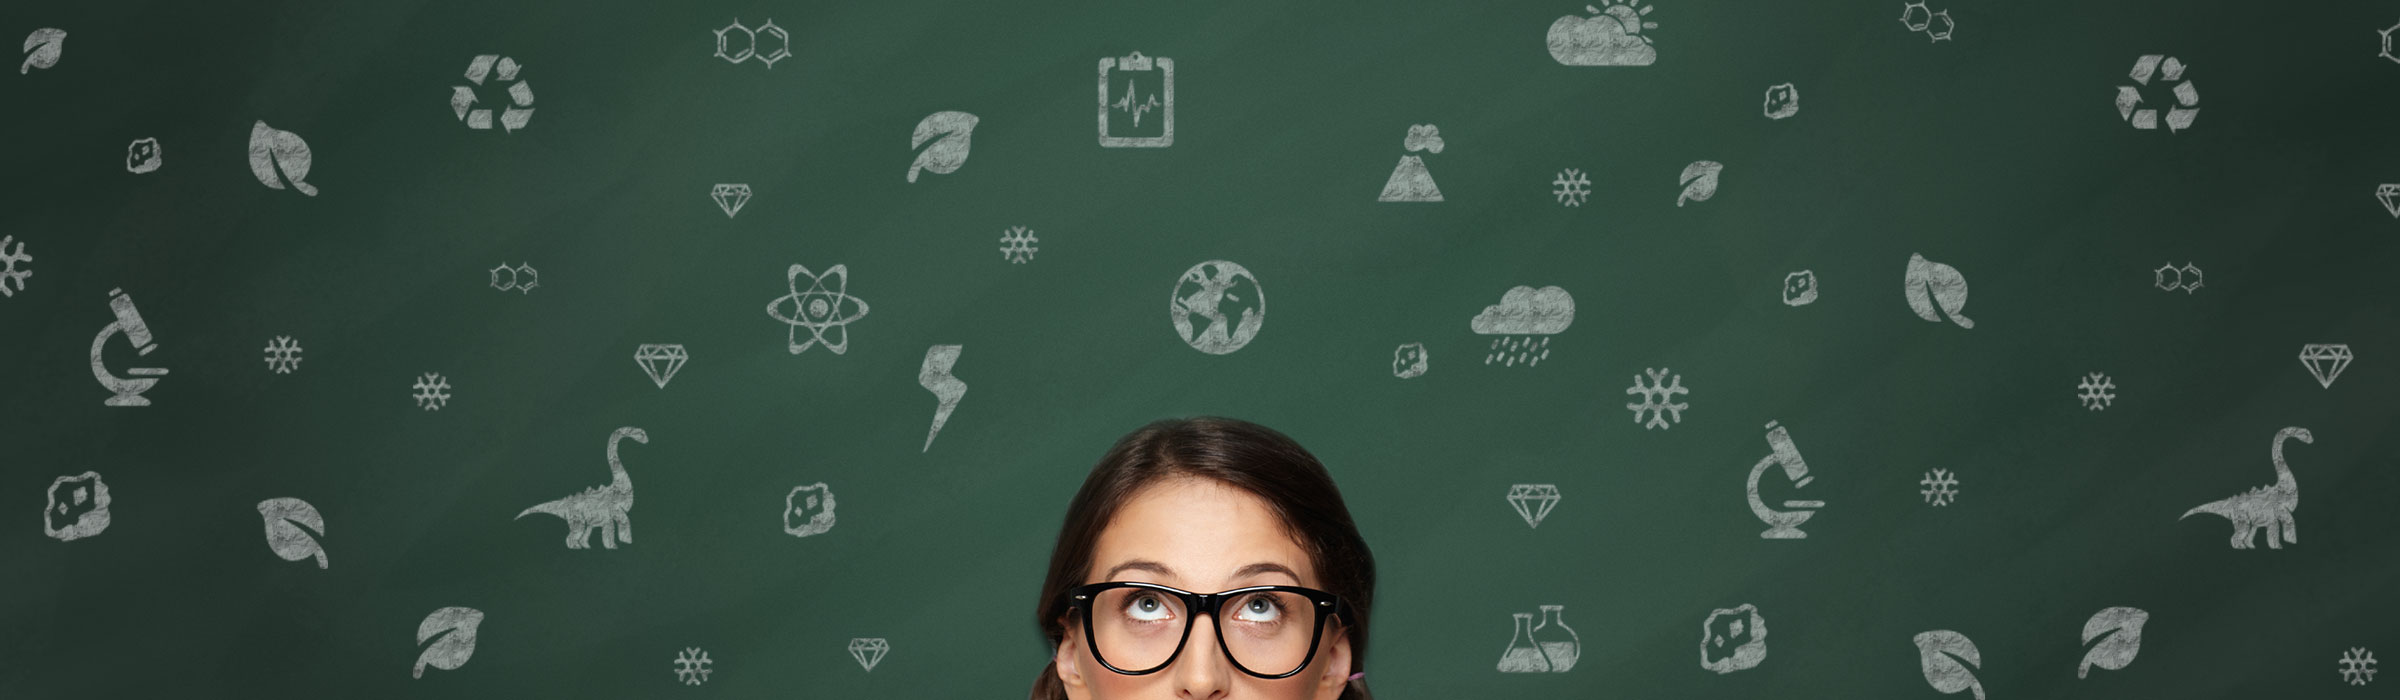 A brunette woman wearing glasses looking up at the science symbols spread around the green background; microscopes, volcanos, snowflakes, atoms, clouds, dinosaurs.